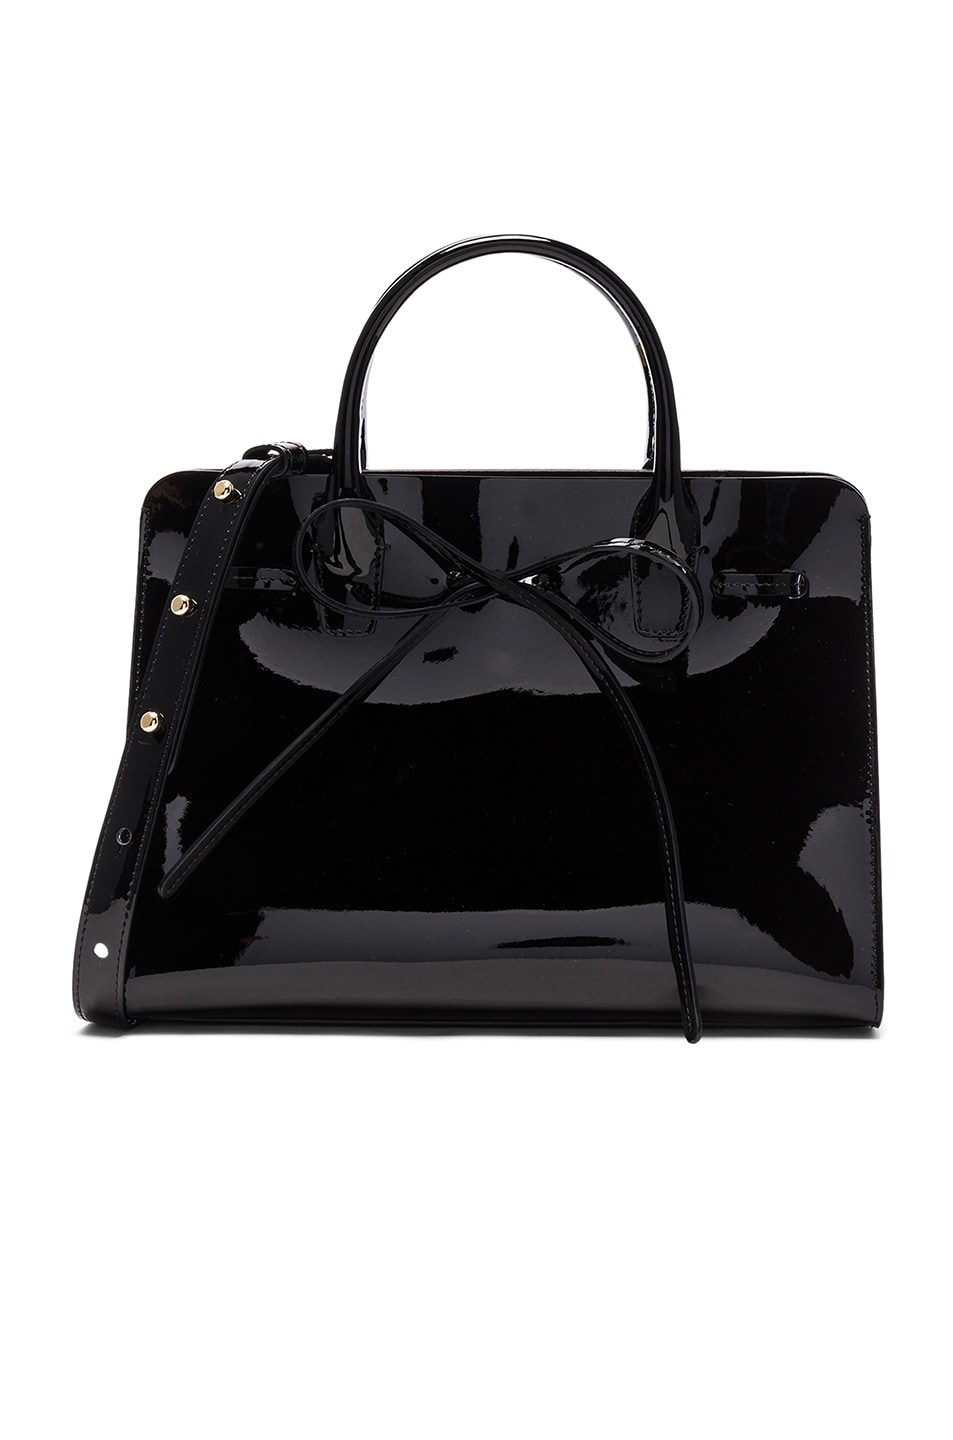 Image 1 of Mansur Gavriel Mini Sun Bag in Black Patent